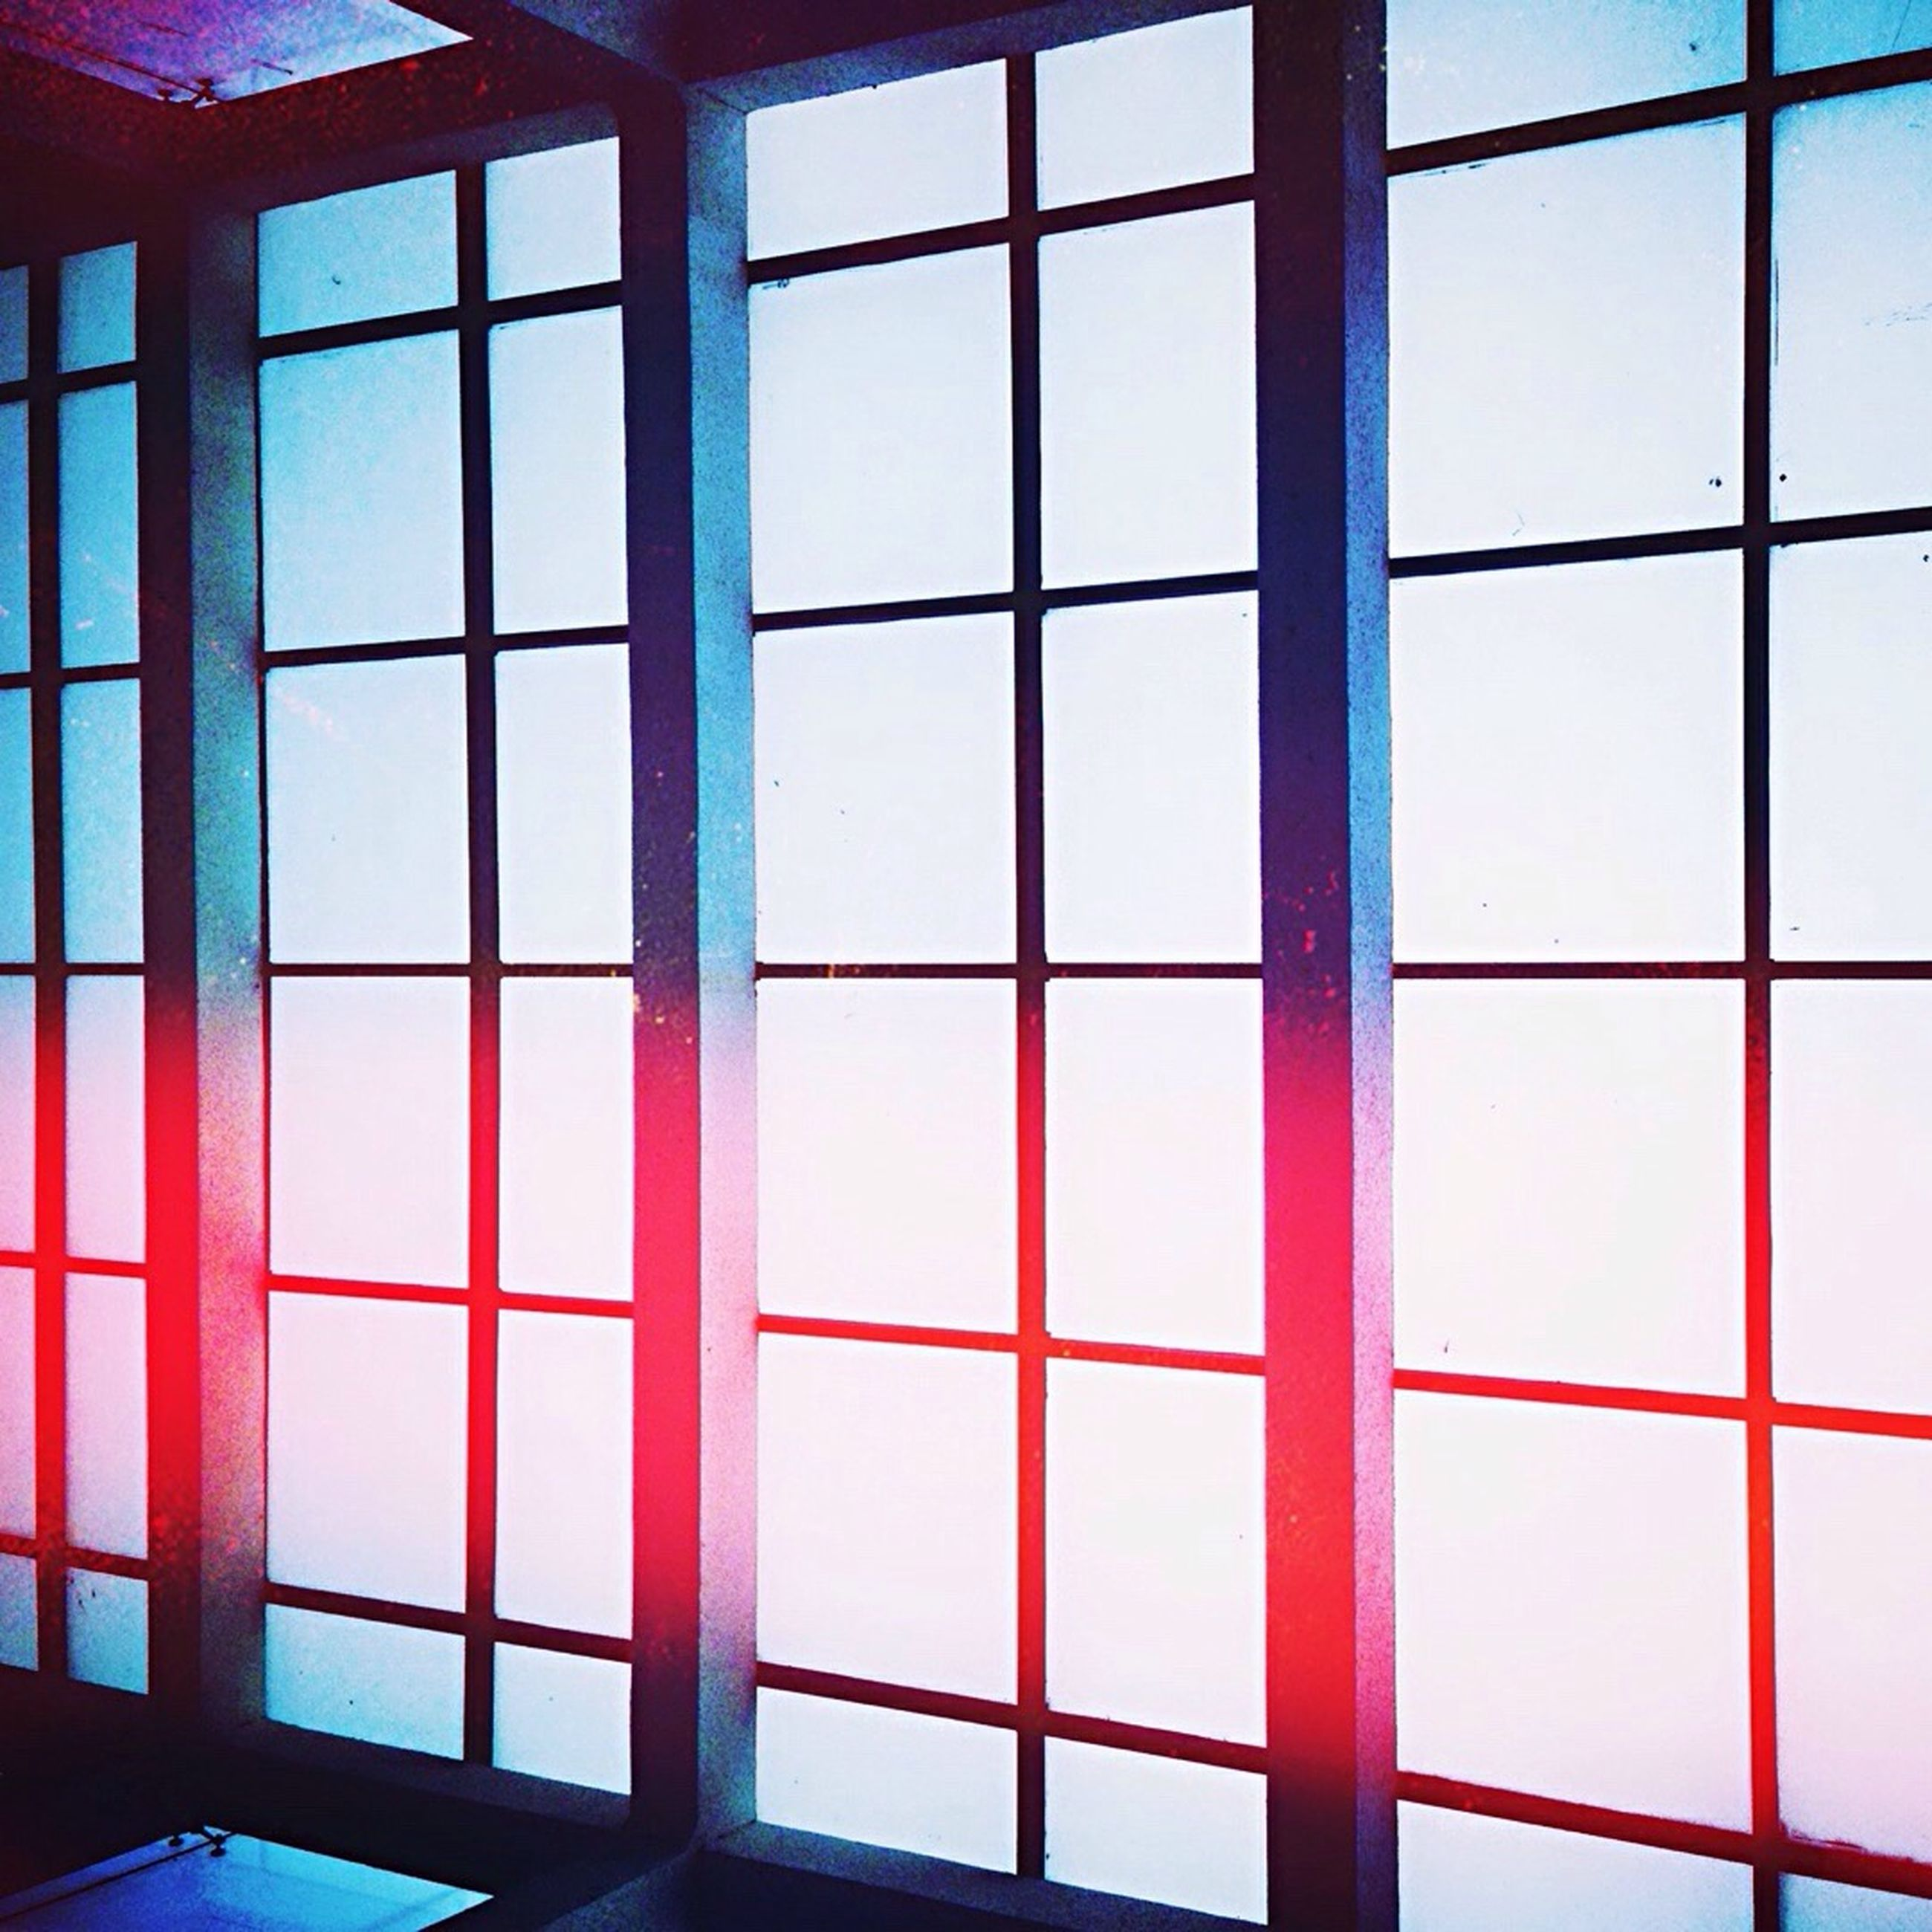 window, indoors, glass - material, transparent, architecture, built structure, full frame, pattern, square shape, geometric shape, glass, backgrounds, reflection, day, building exterior, no people, modern, shape, design, wall